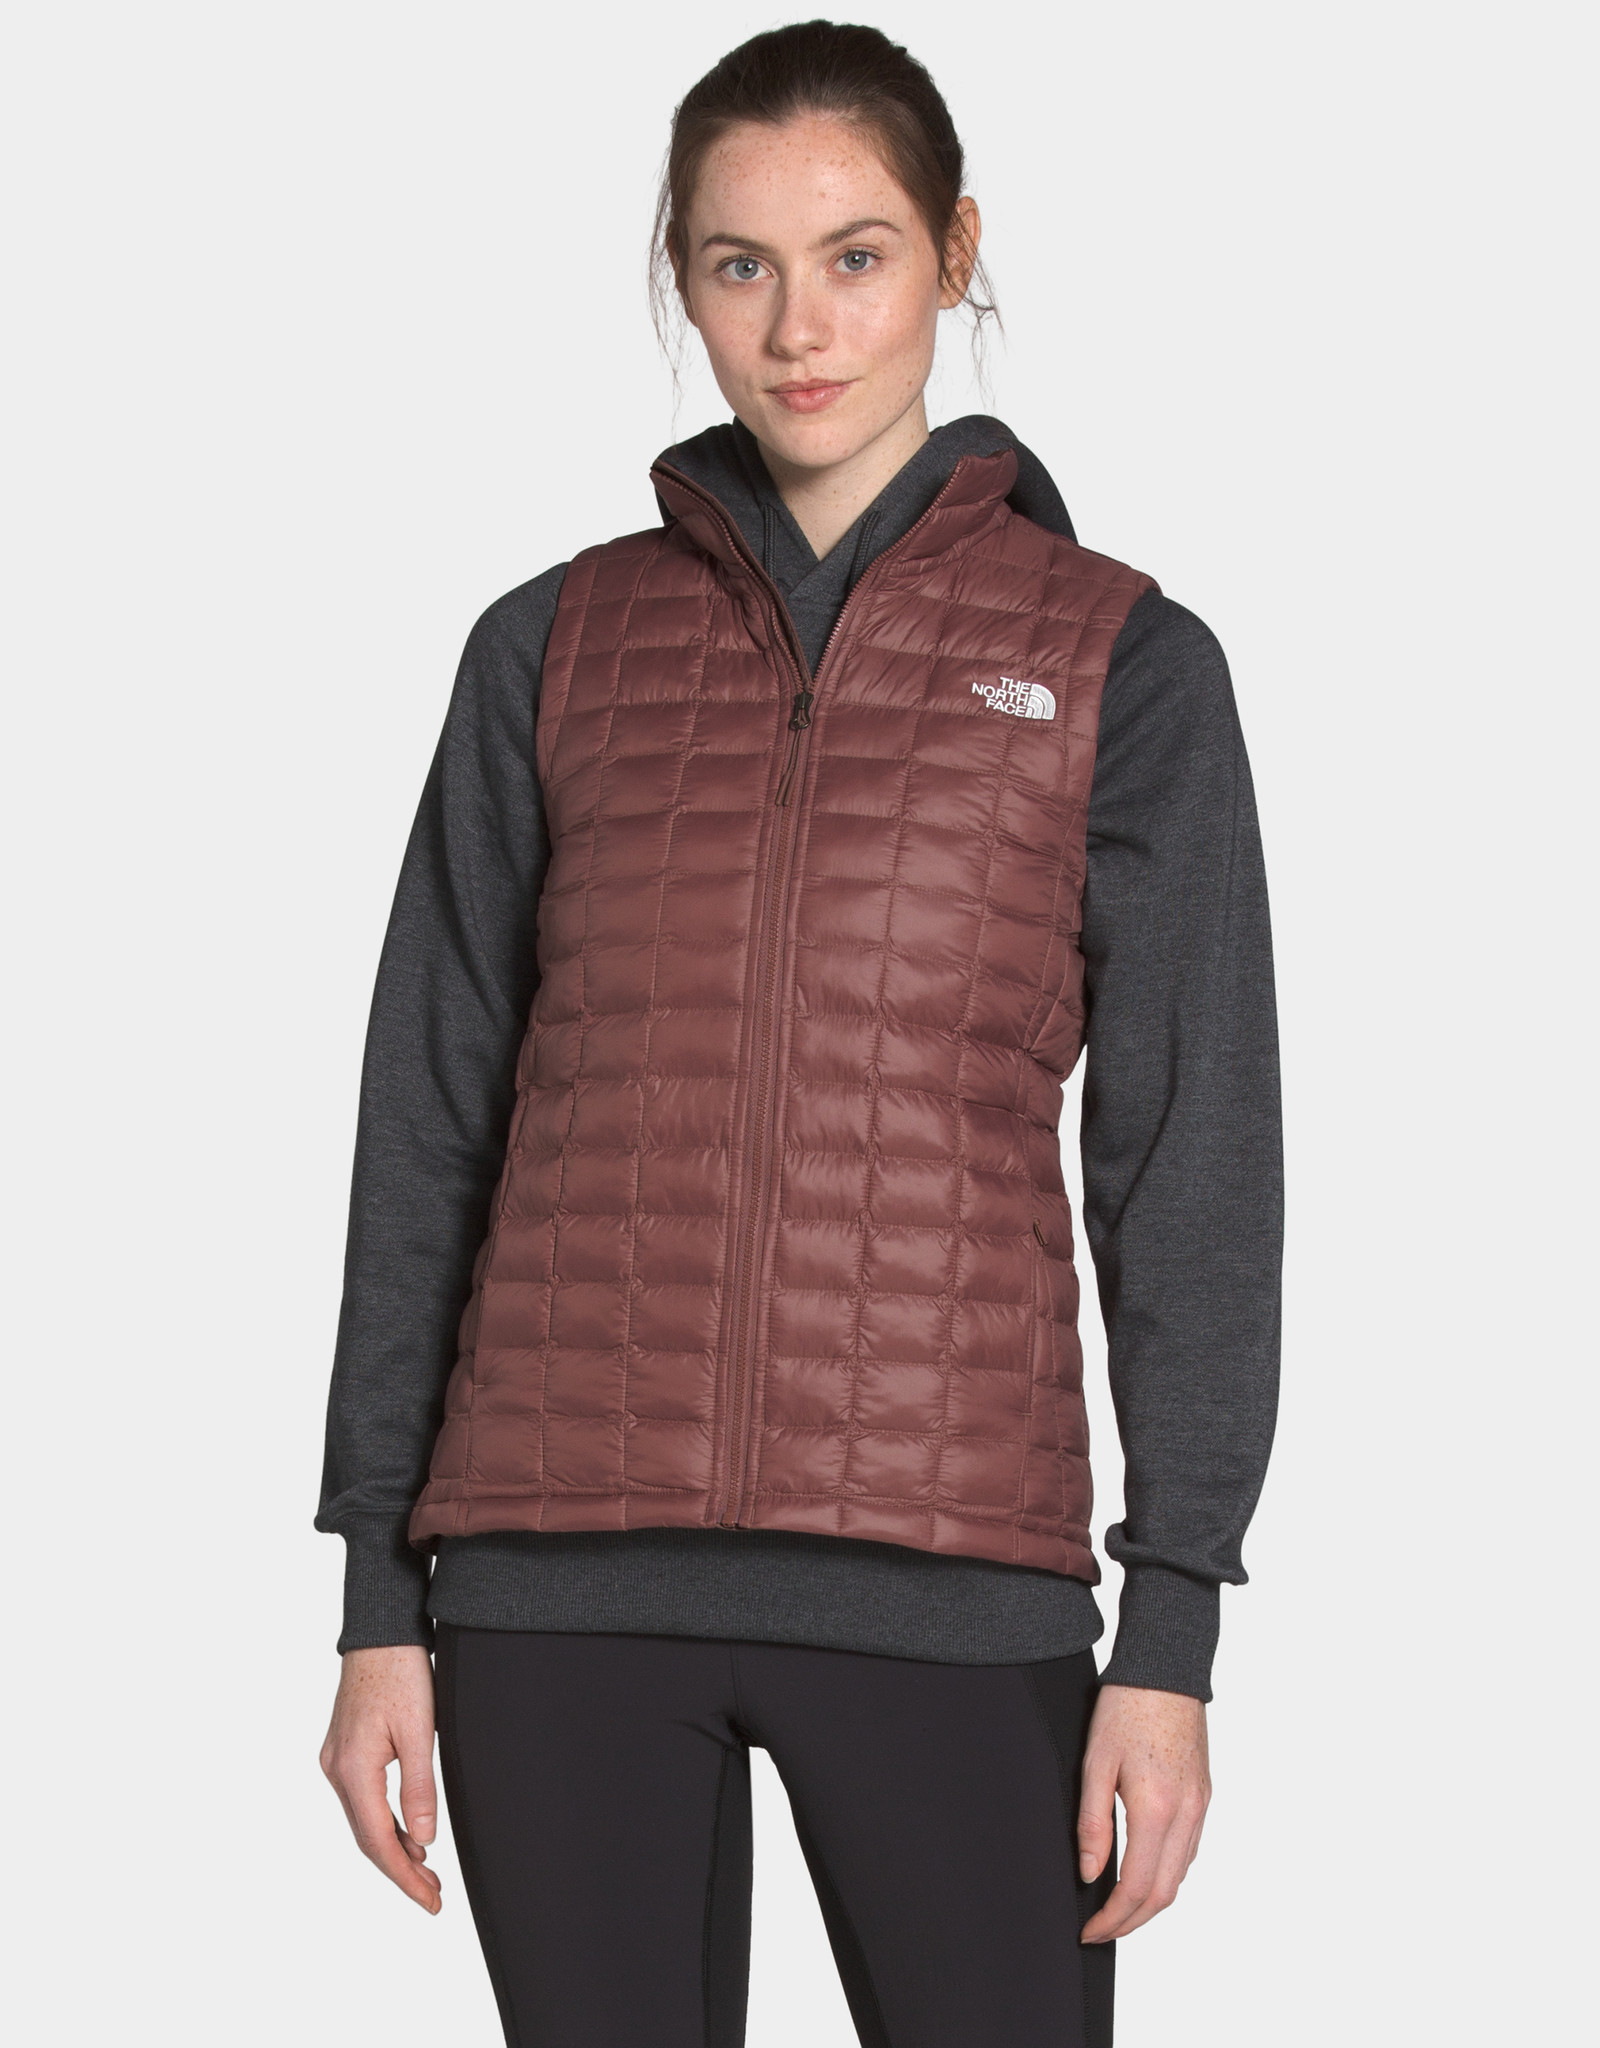 The North Face The North Face Women's Thermoball Eco Vest -W2020